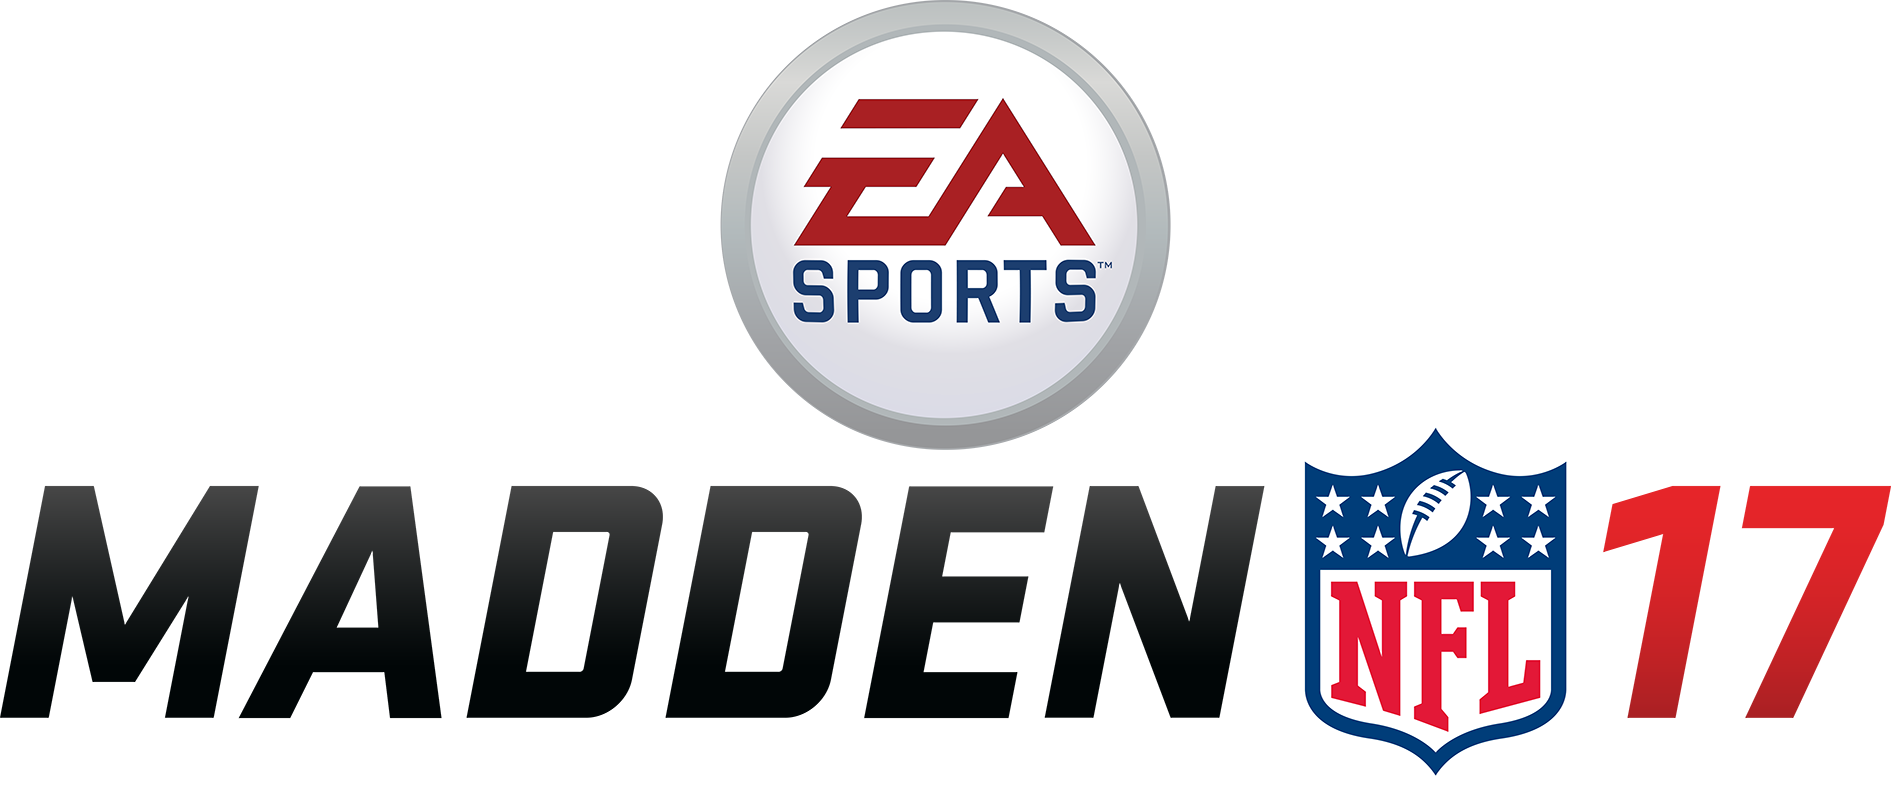 2017 nfl draft logo png. Twelve features that need